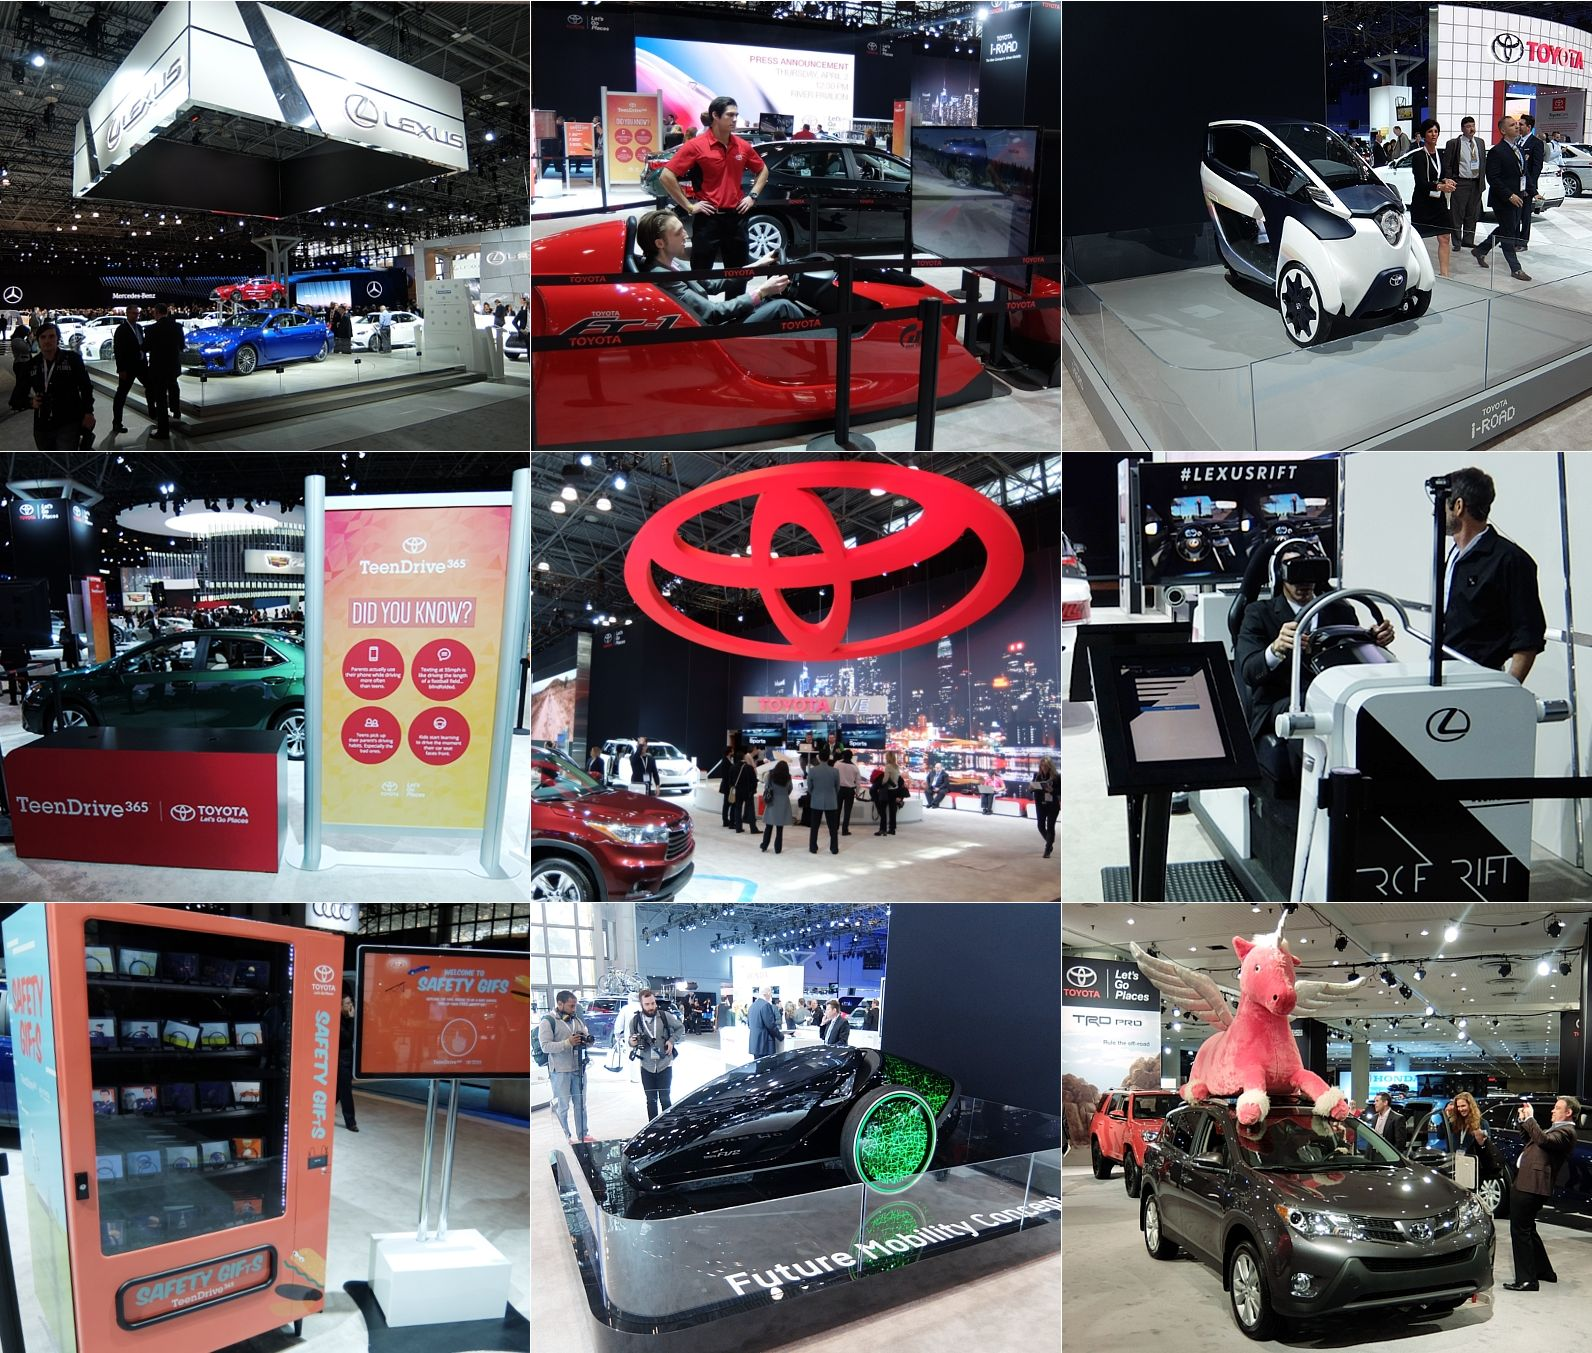 ニューヨーク国際オートショー New York International Auto Show 2015_b0007805_3564729.jpg